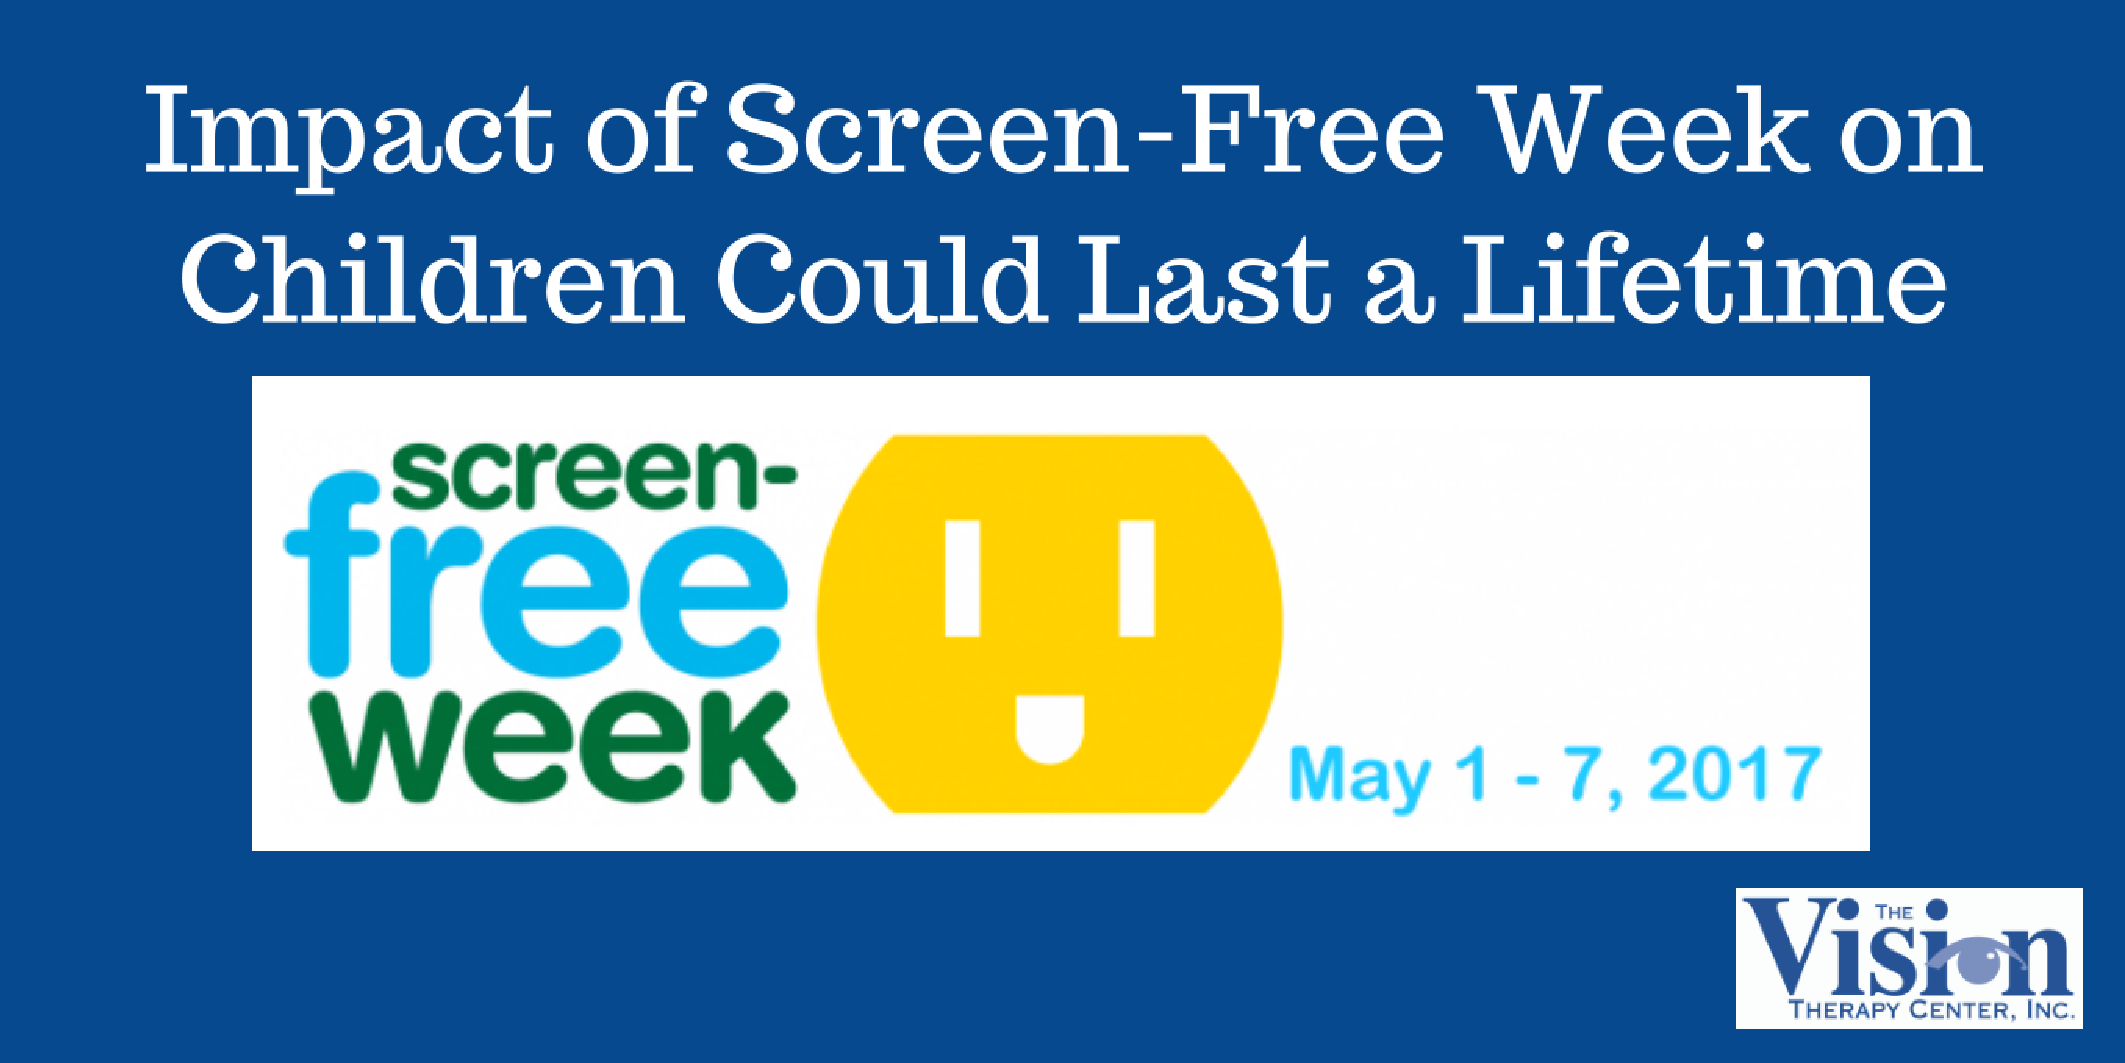 Impact of Screen-Free Week on Children Could Last a Lifetime